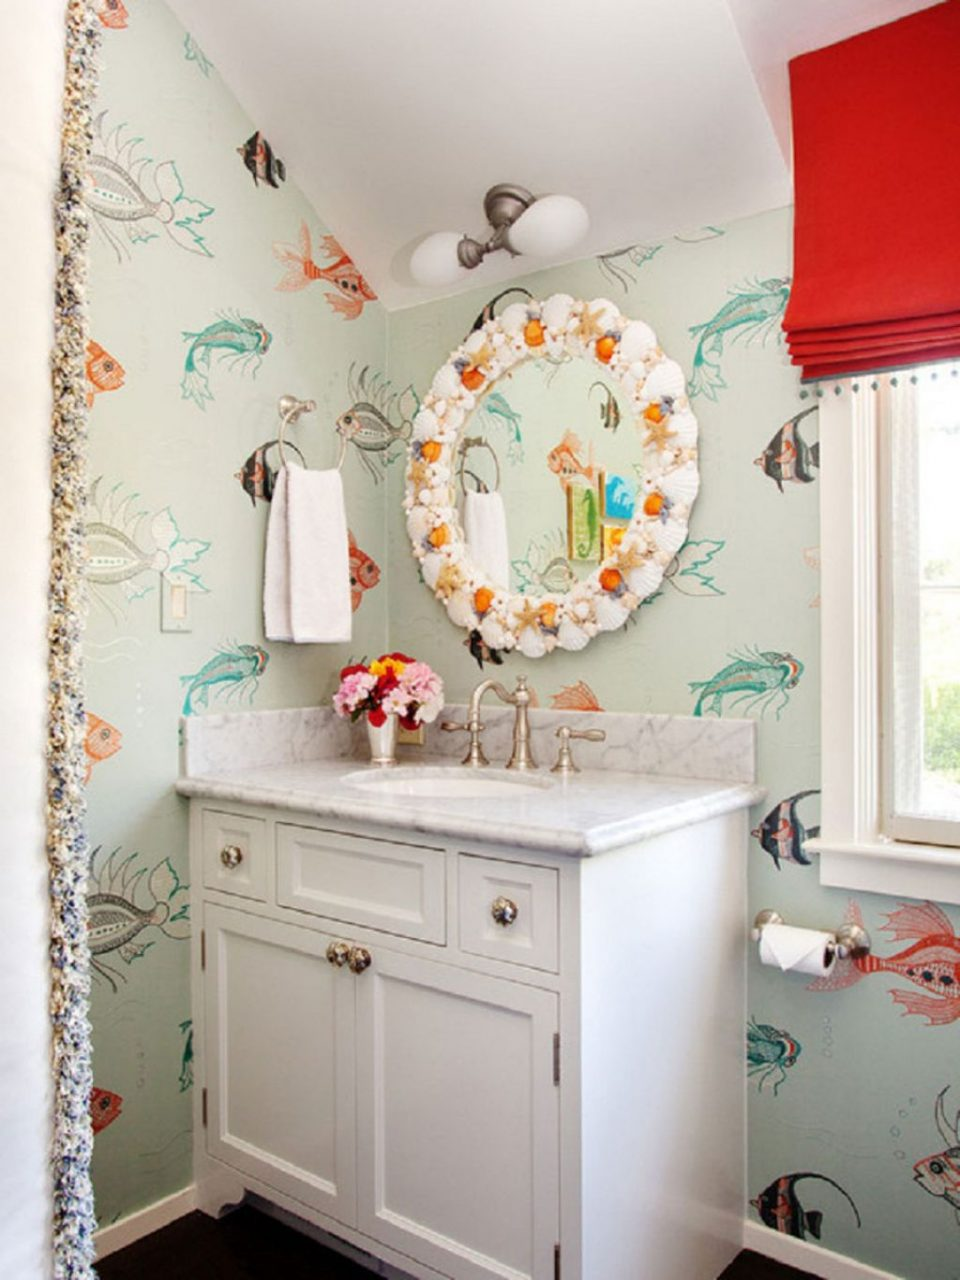 Cute Bathrooms Pictures Decor Furniture Orange Bathroom Small Fresh